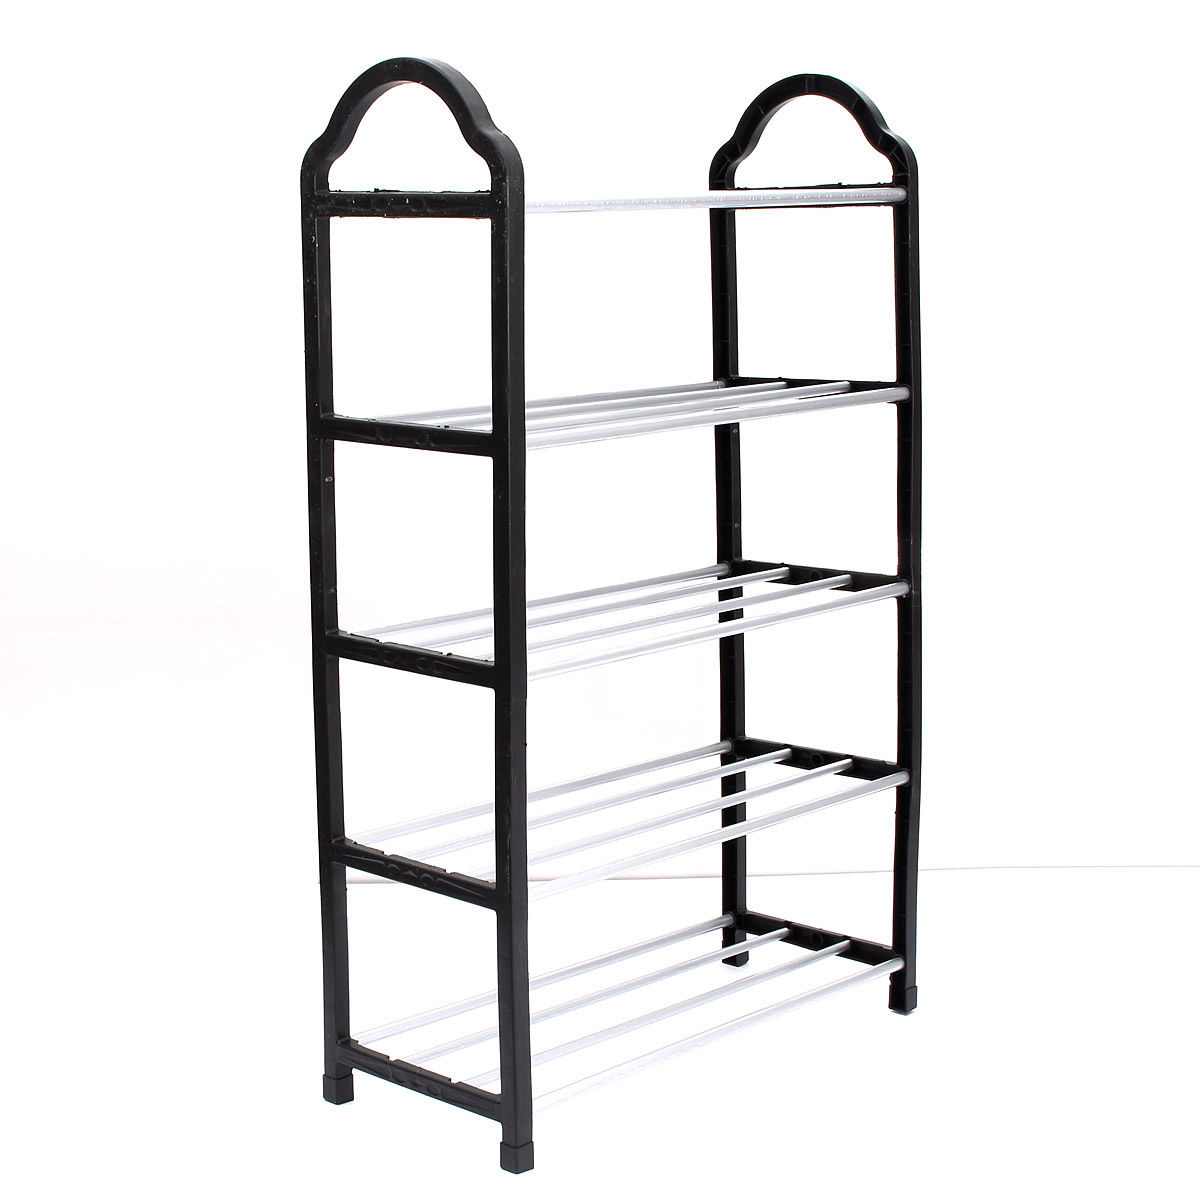 5 Tier Home Storage Organizer Cabinet Shelf Space Saving Shoe Tower Rack Stand Black nocm shoe rack free standing adjustable organizer space saving black 6 tier